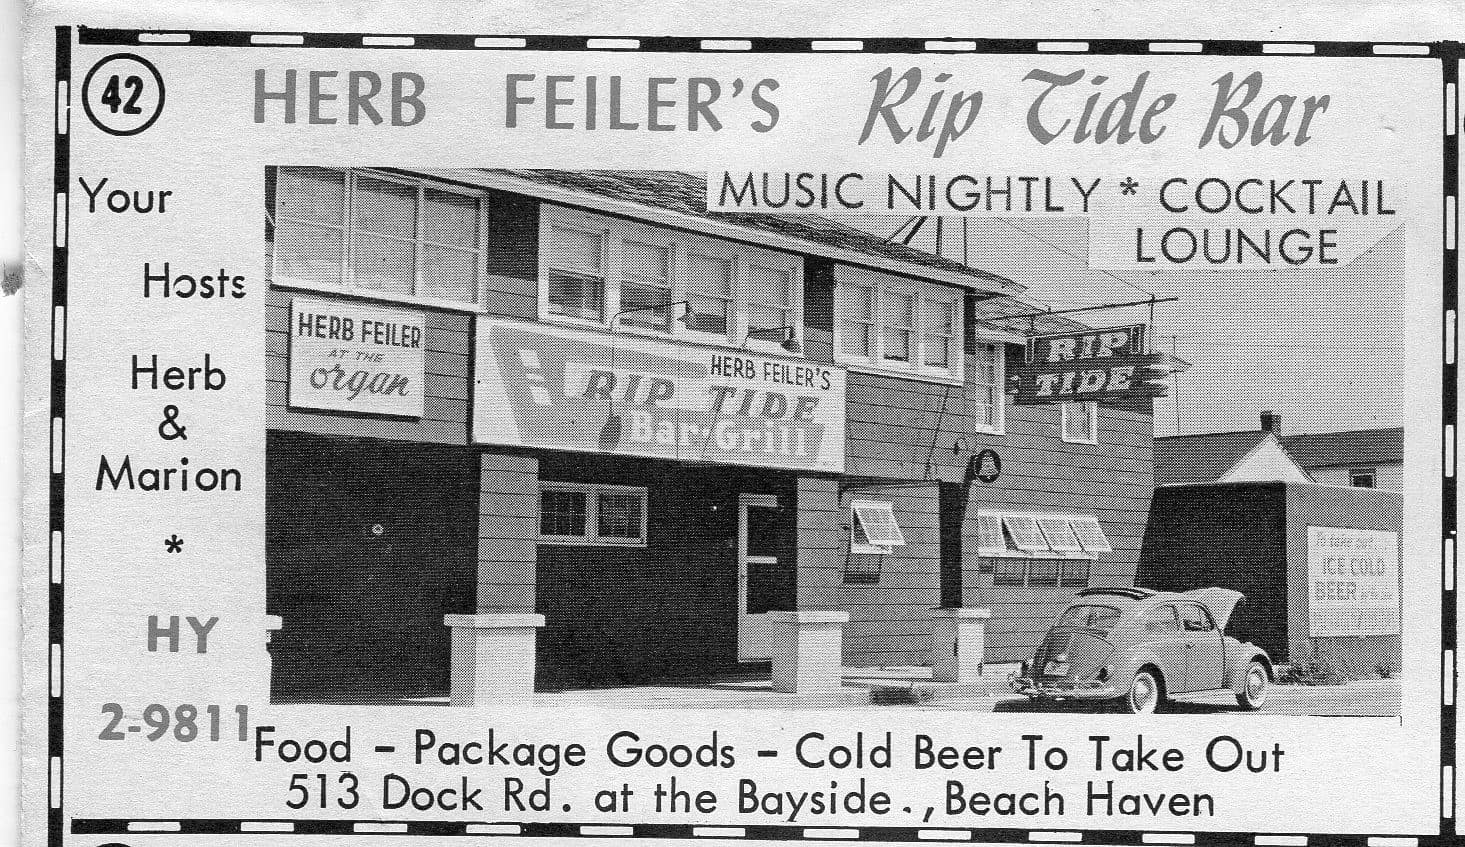 An ad for Herb Feiler's Rip Tide Bar from 1963